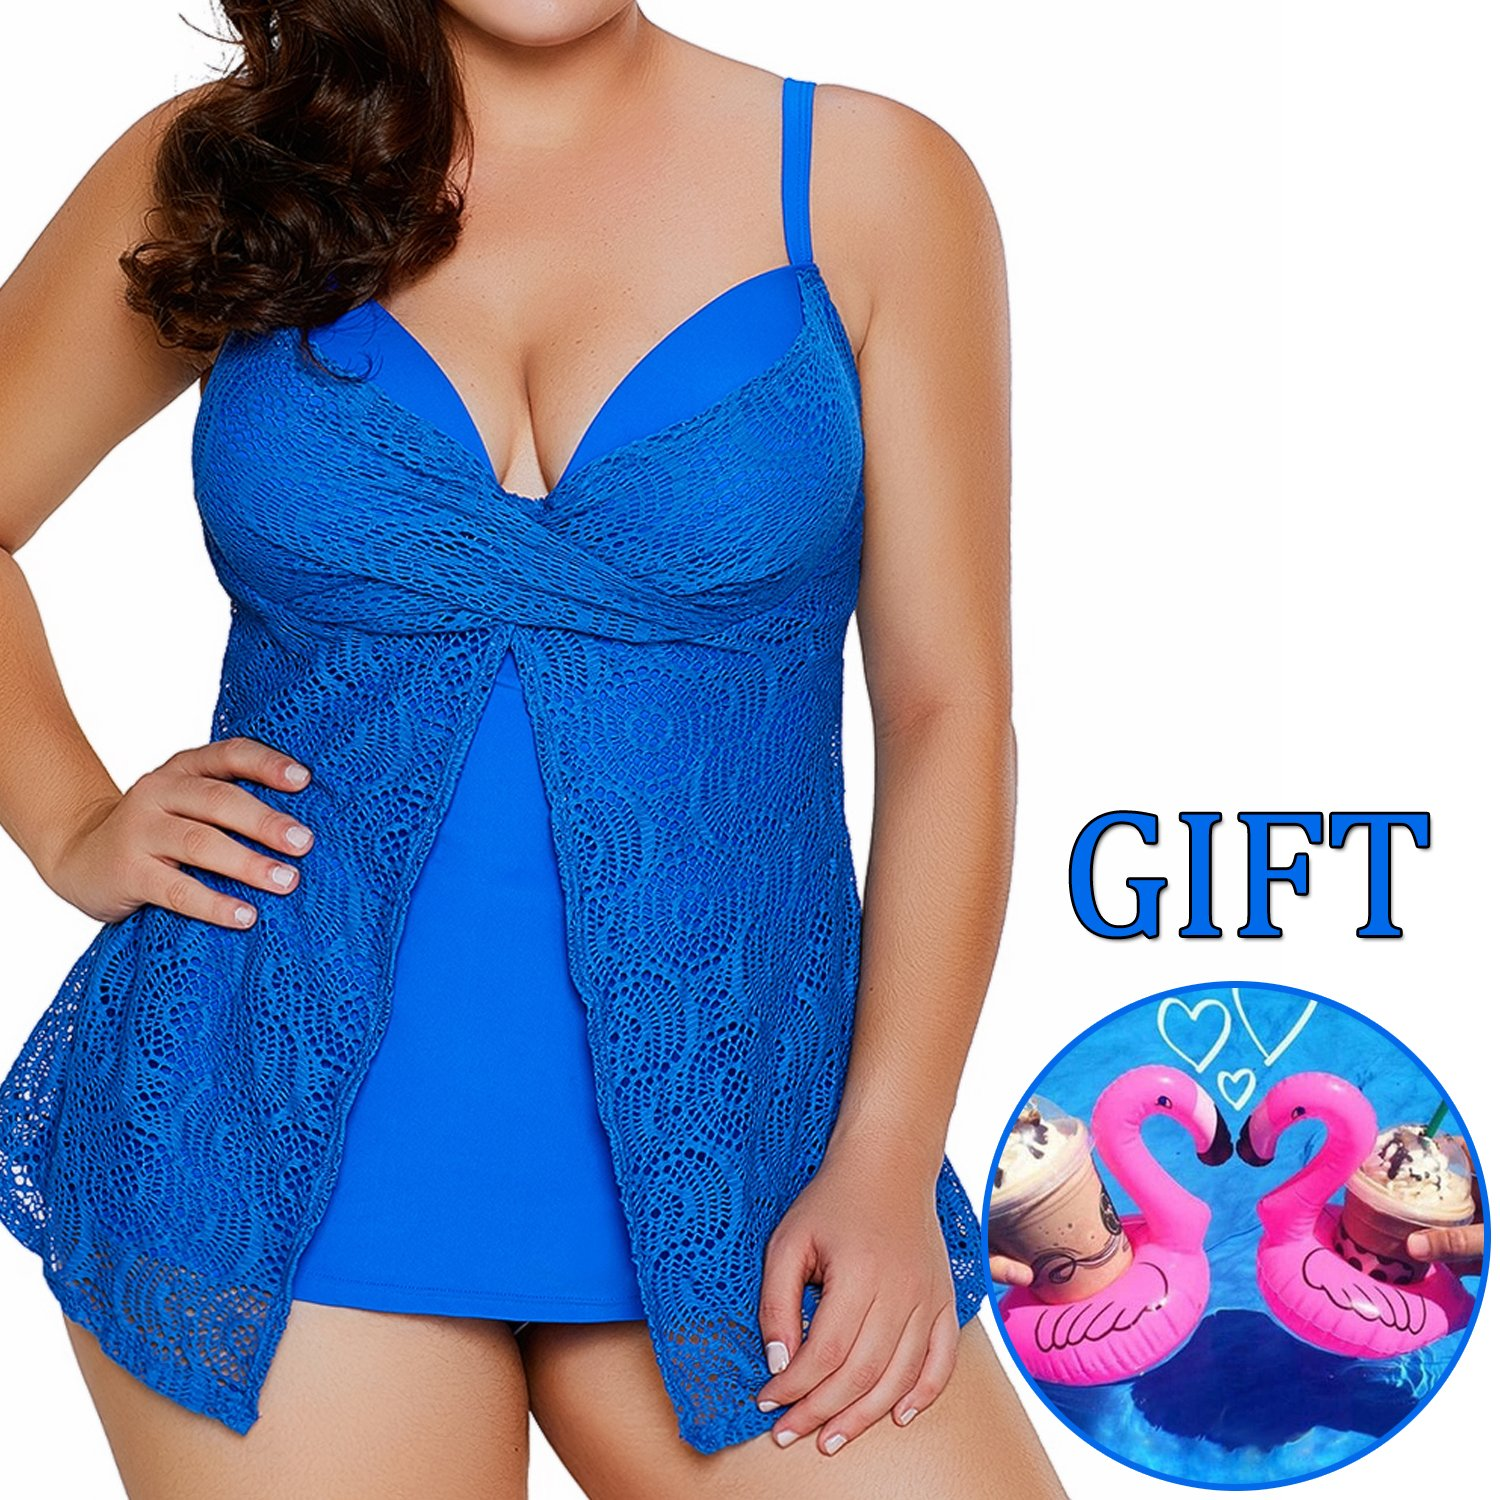 b8f183f5e1344 Super Fabric -- Tankini Swimsuit made of 82%Nylon+18%Spandex.elastic women's  plus size tankini swimsuits,high quality fabric which breathable and quick  ...